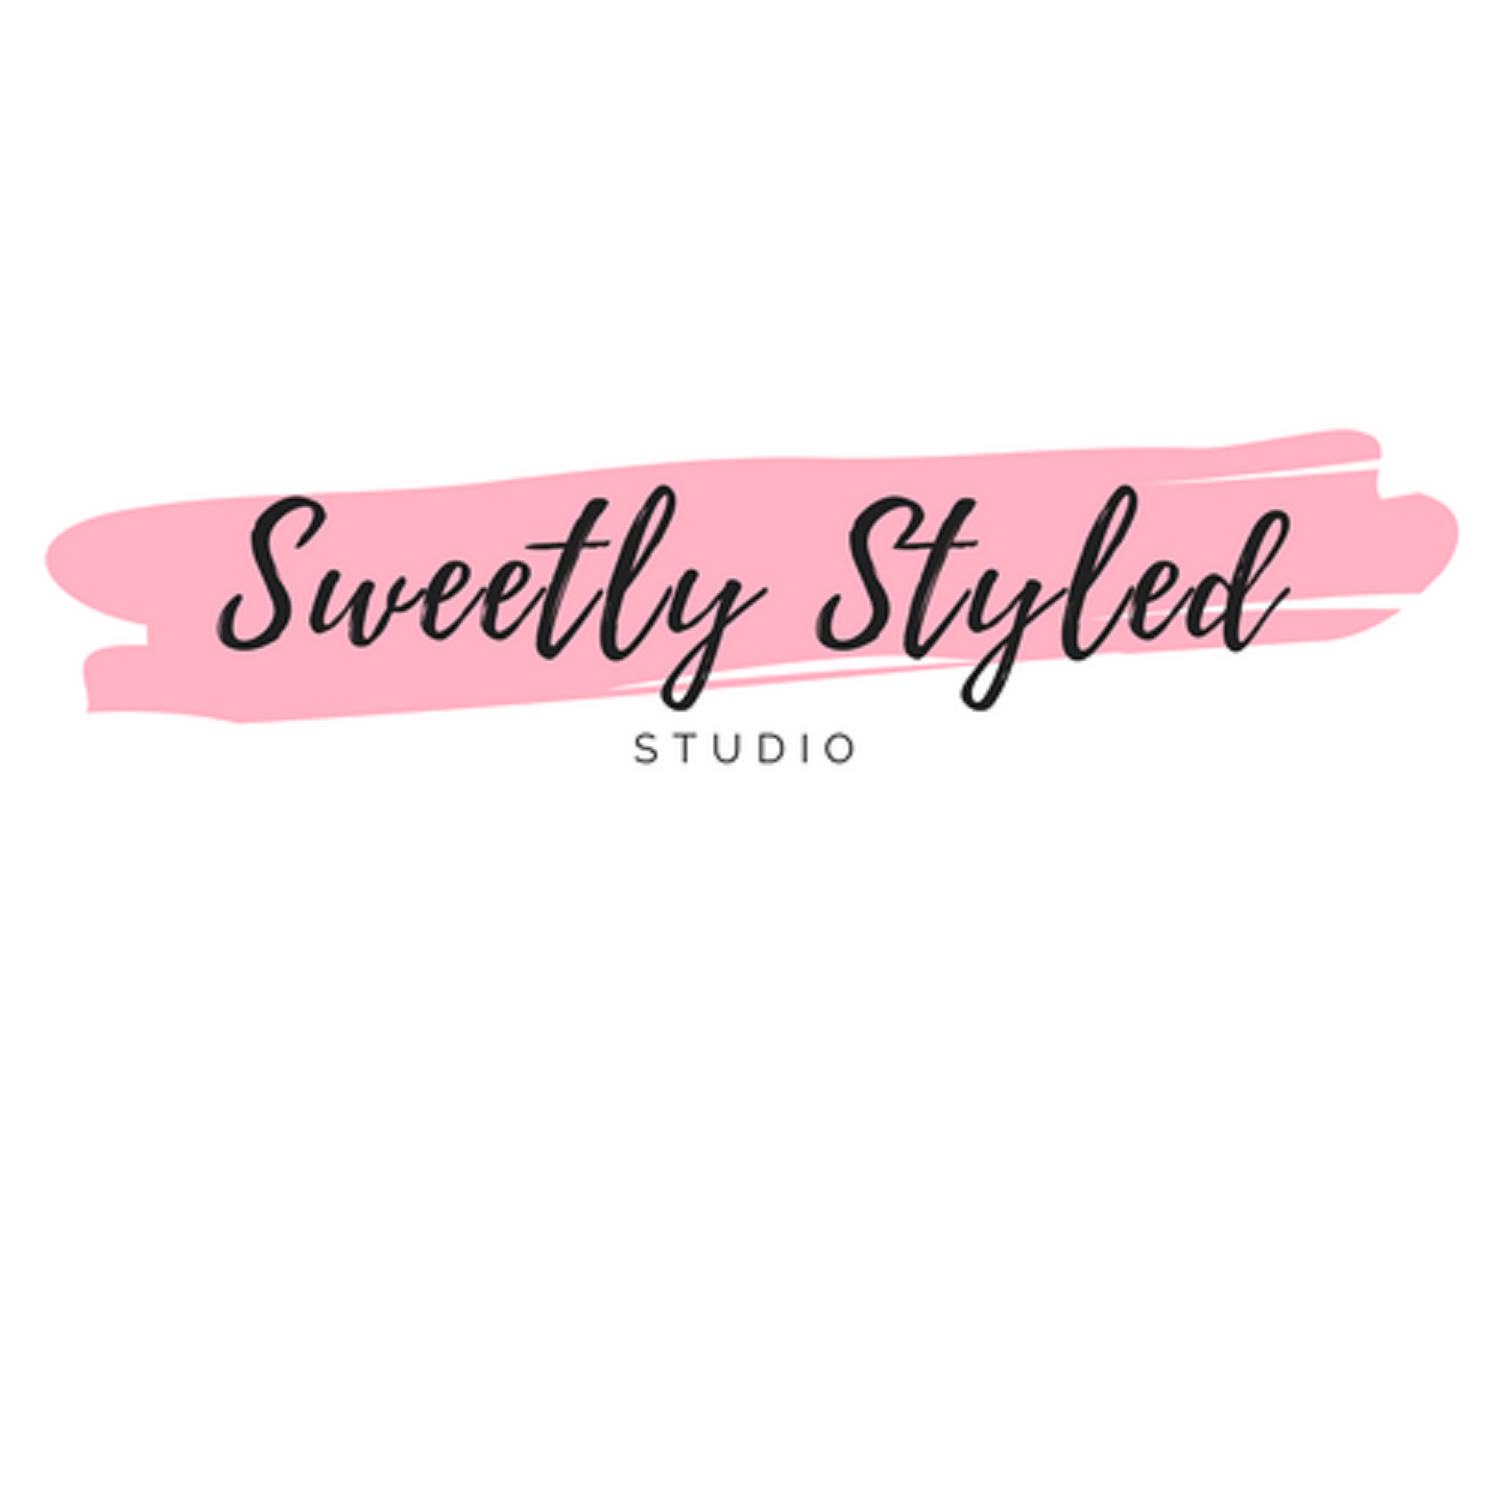 Sweetly Styled Studio